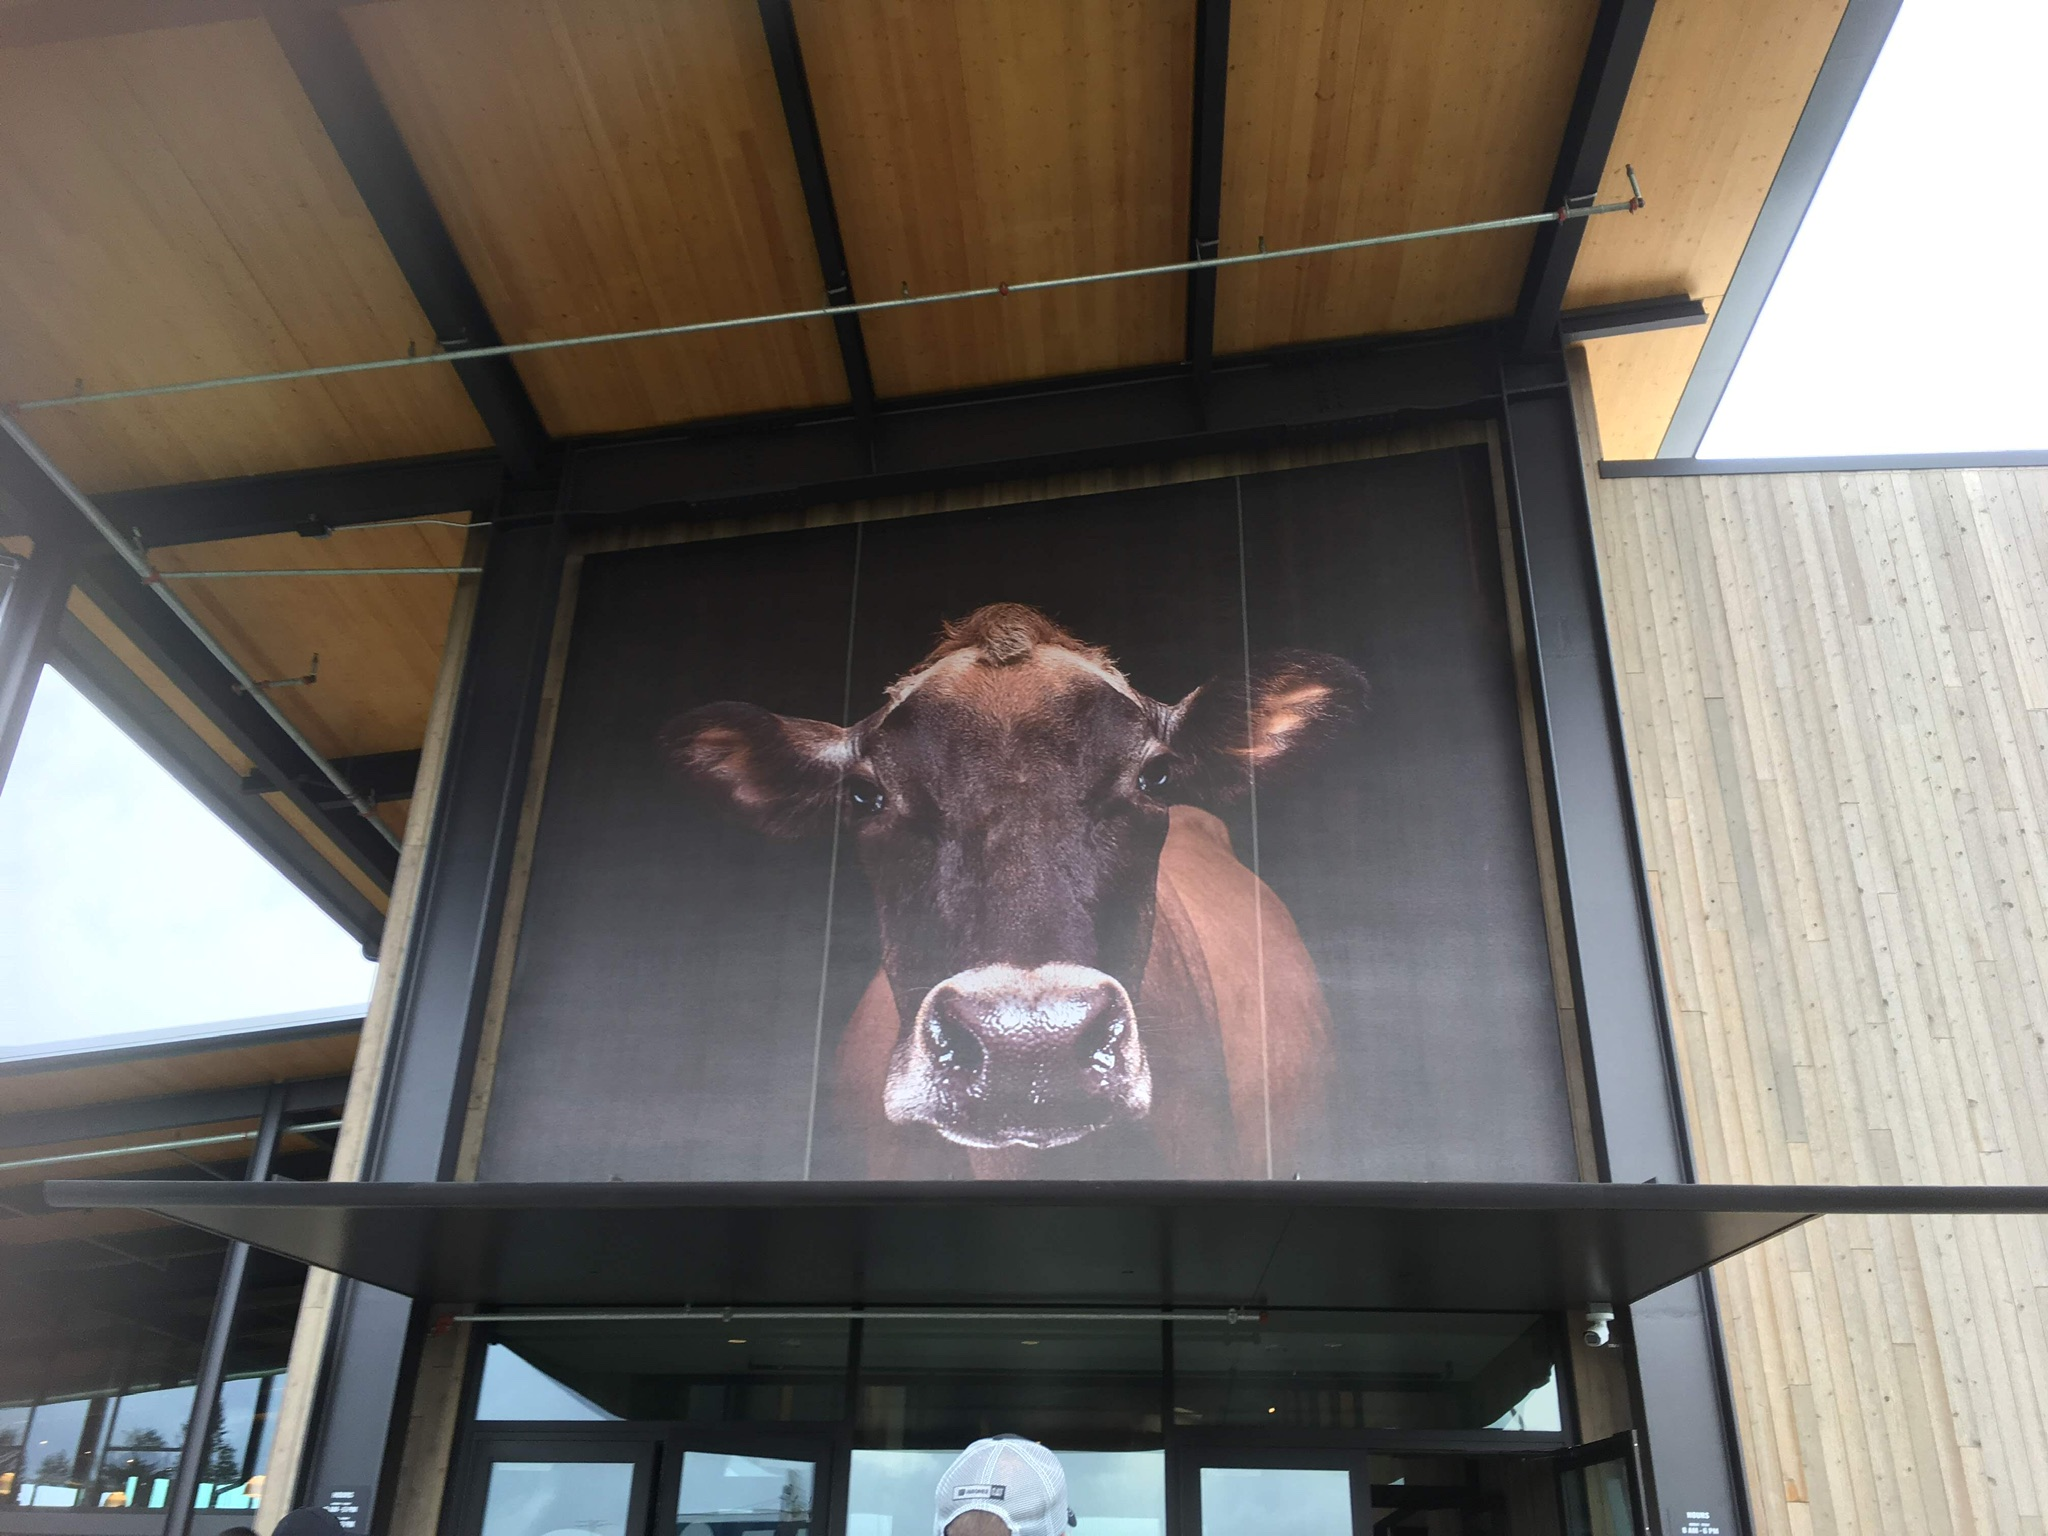 Cow picture on building